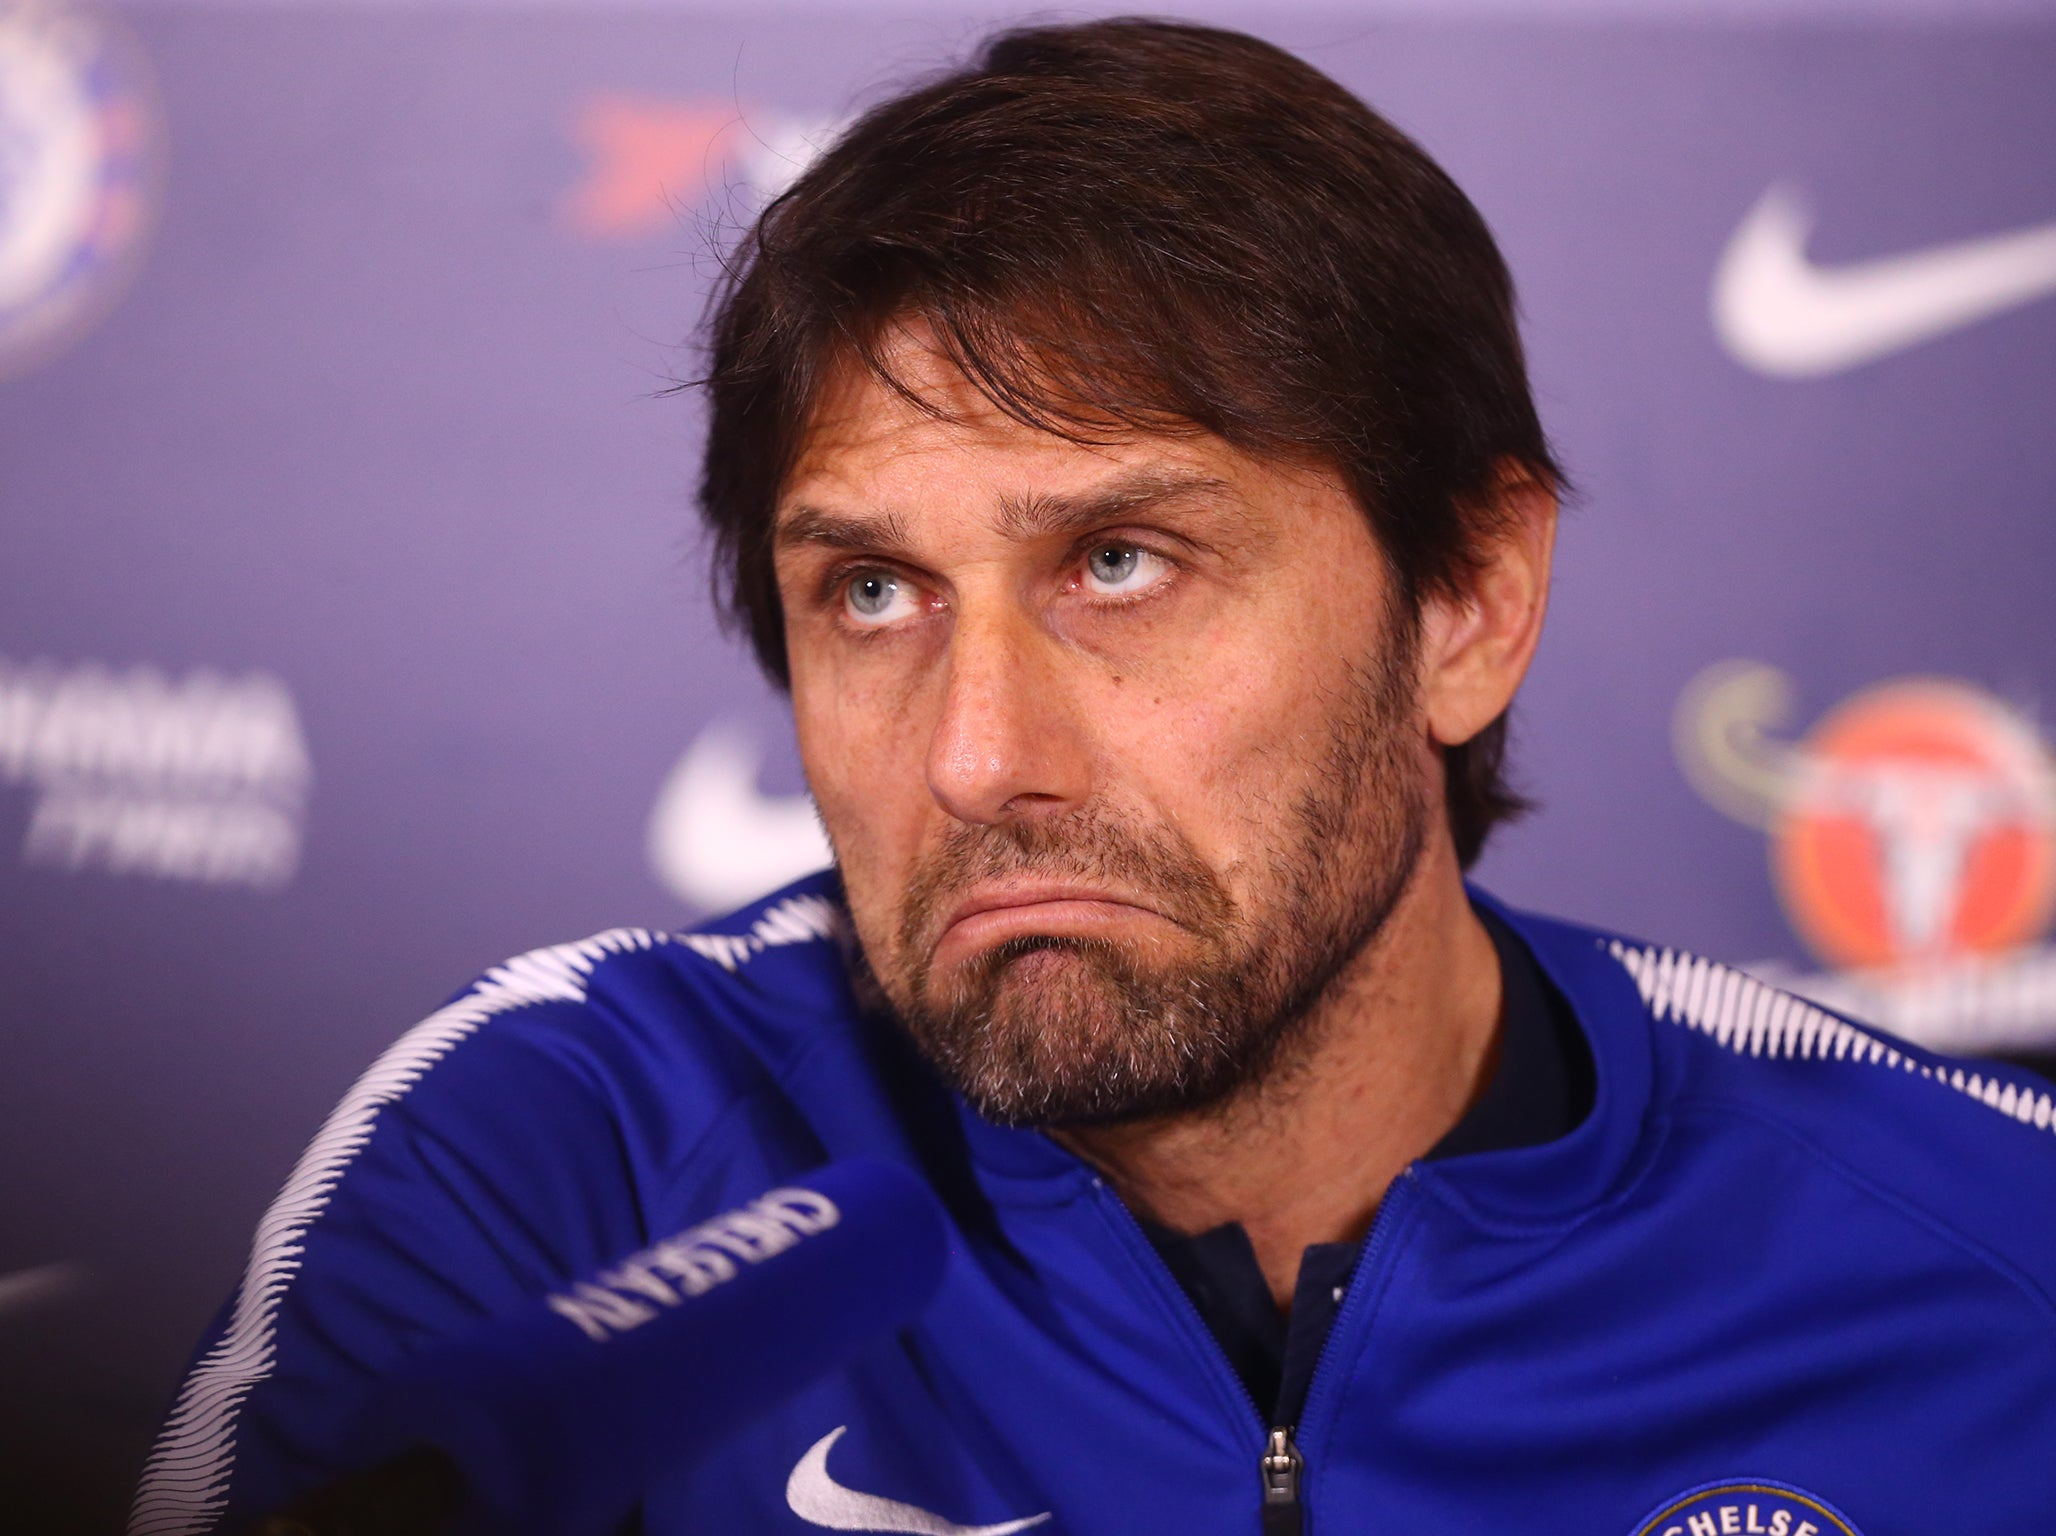 Antonio Conte defends coaching ability and says trying to persuade Chelsea to buy top players has been a 'disaster'